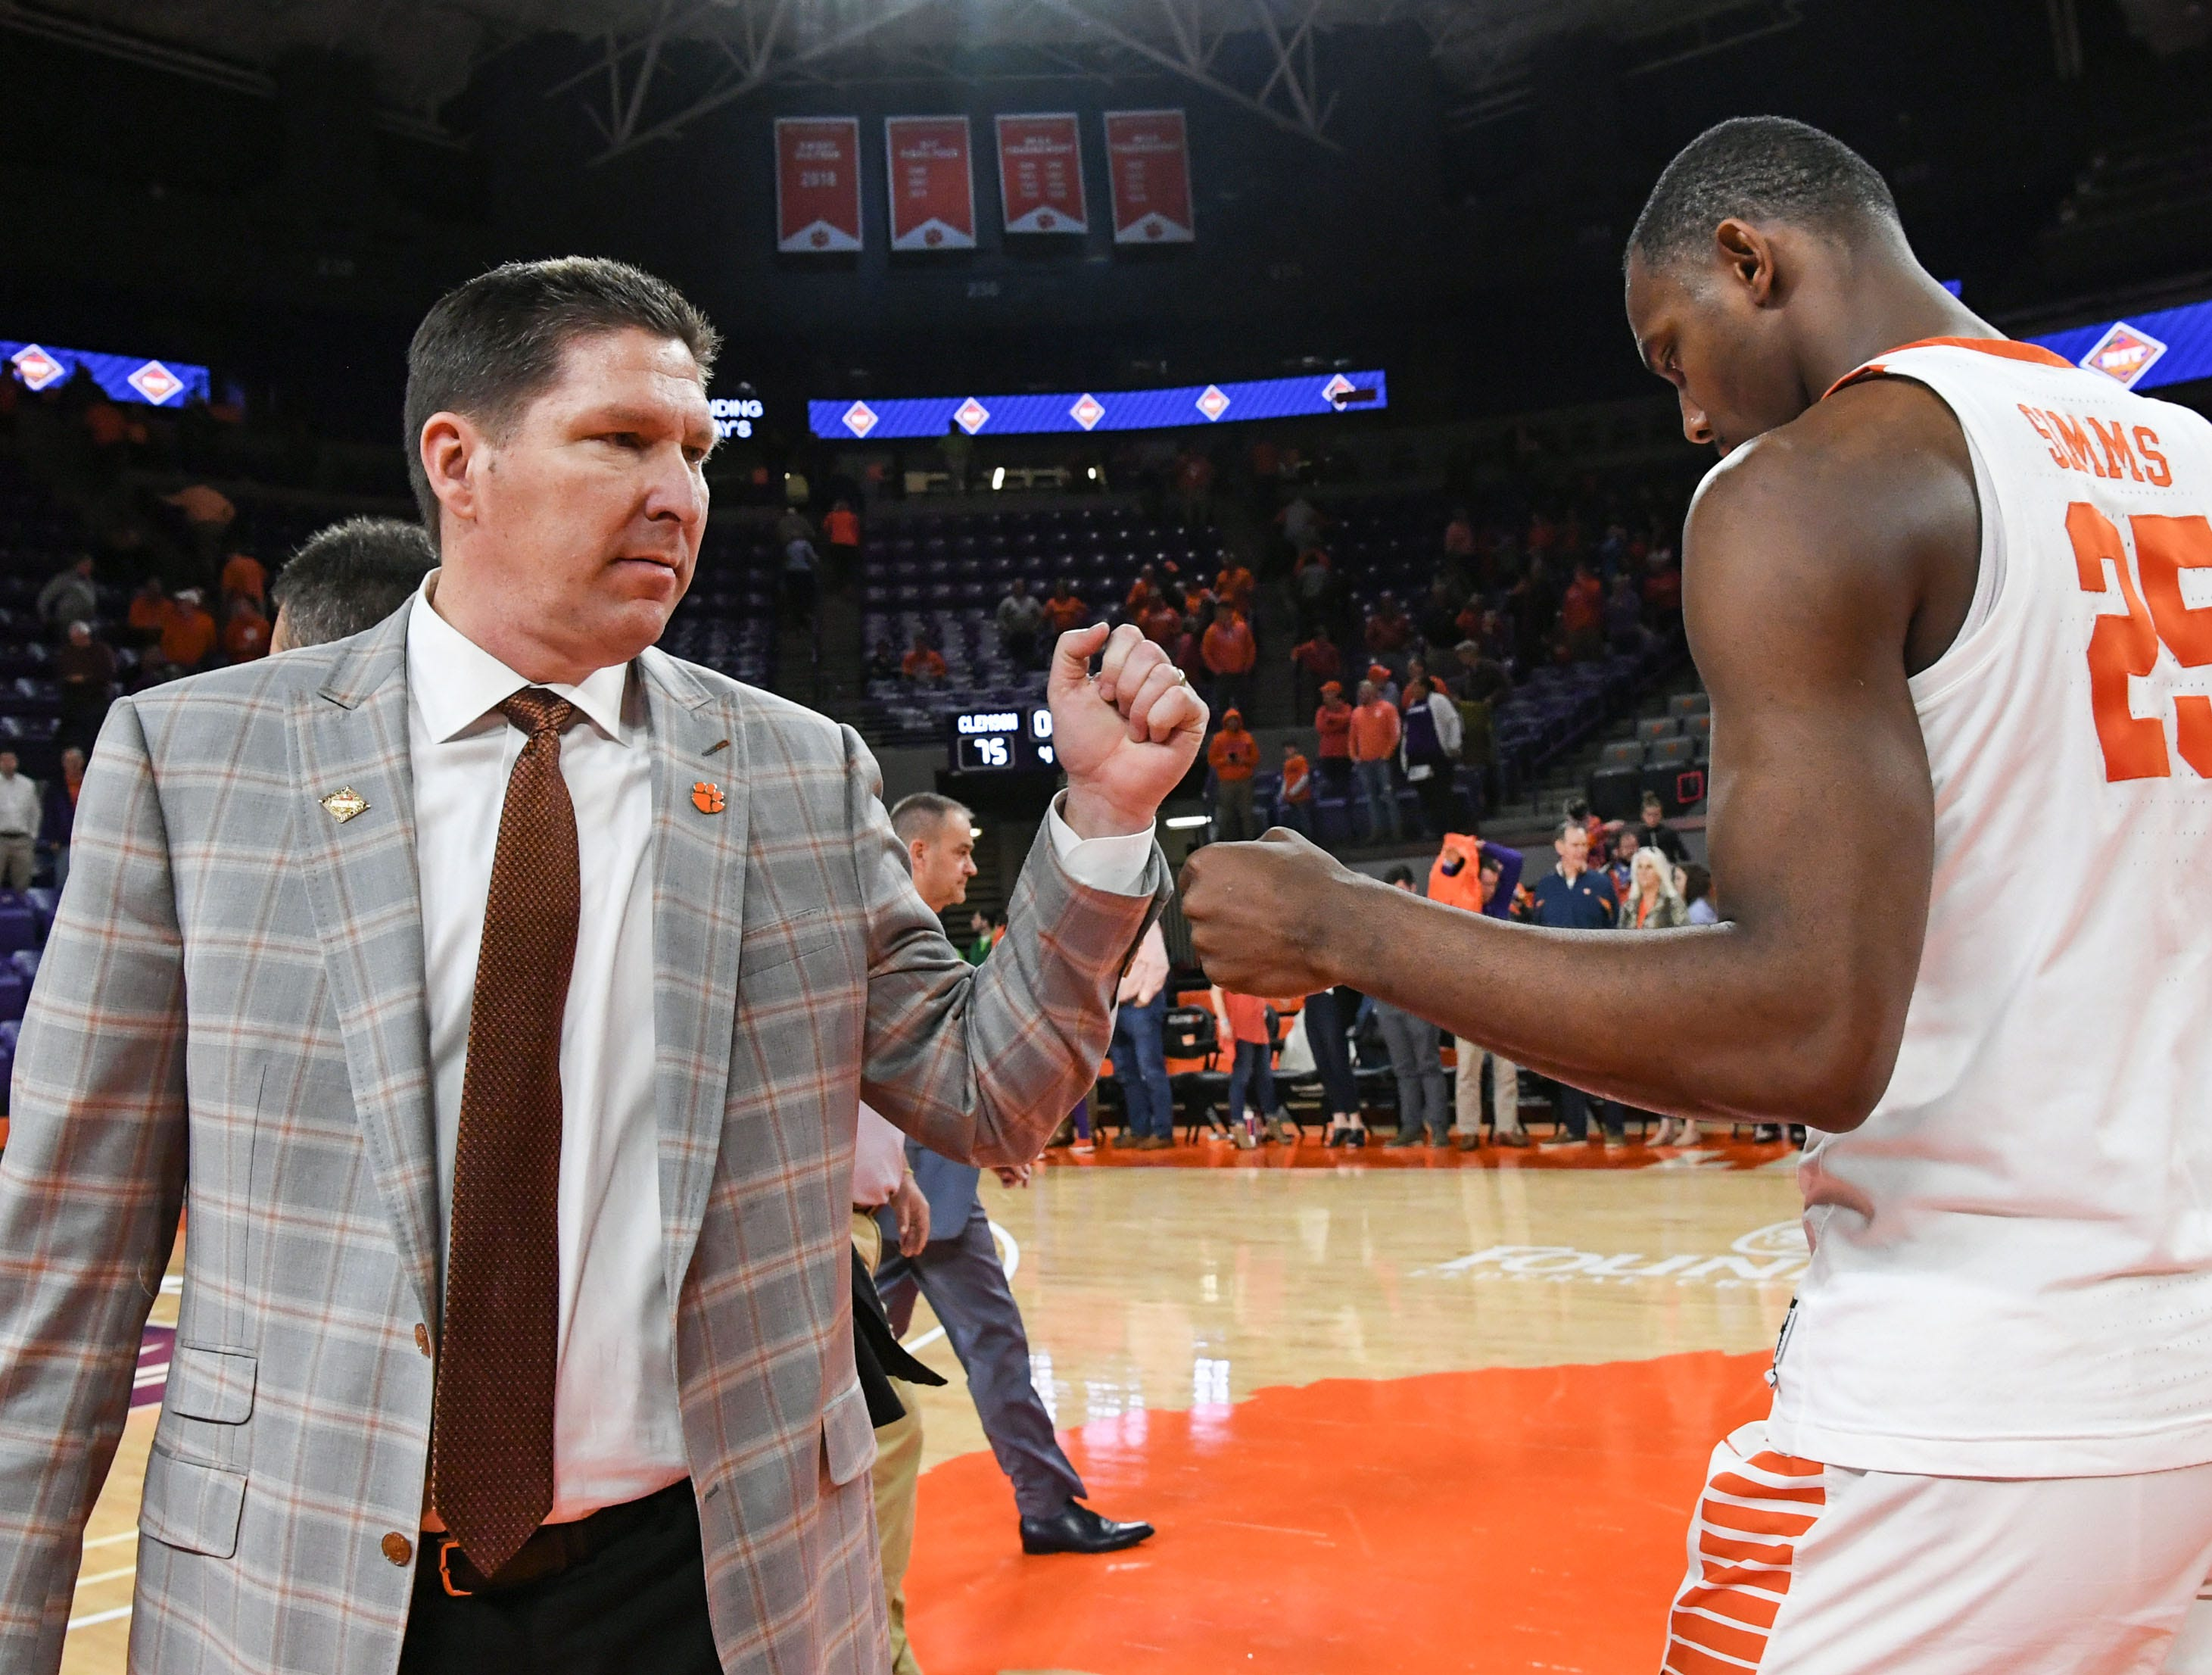 Clemson head coach Brad Brownell fist bumps Clemson forward Aamir Simms (25) after the Tigers beat Wright State 75-69 in the first round of the NIT at Littlejohn Coliseum in Clemson Tuesday, March 19, 2019.